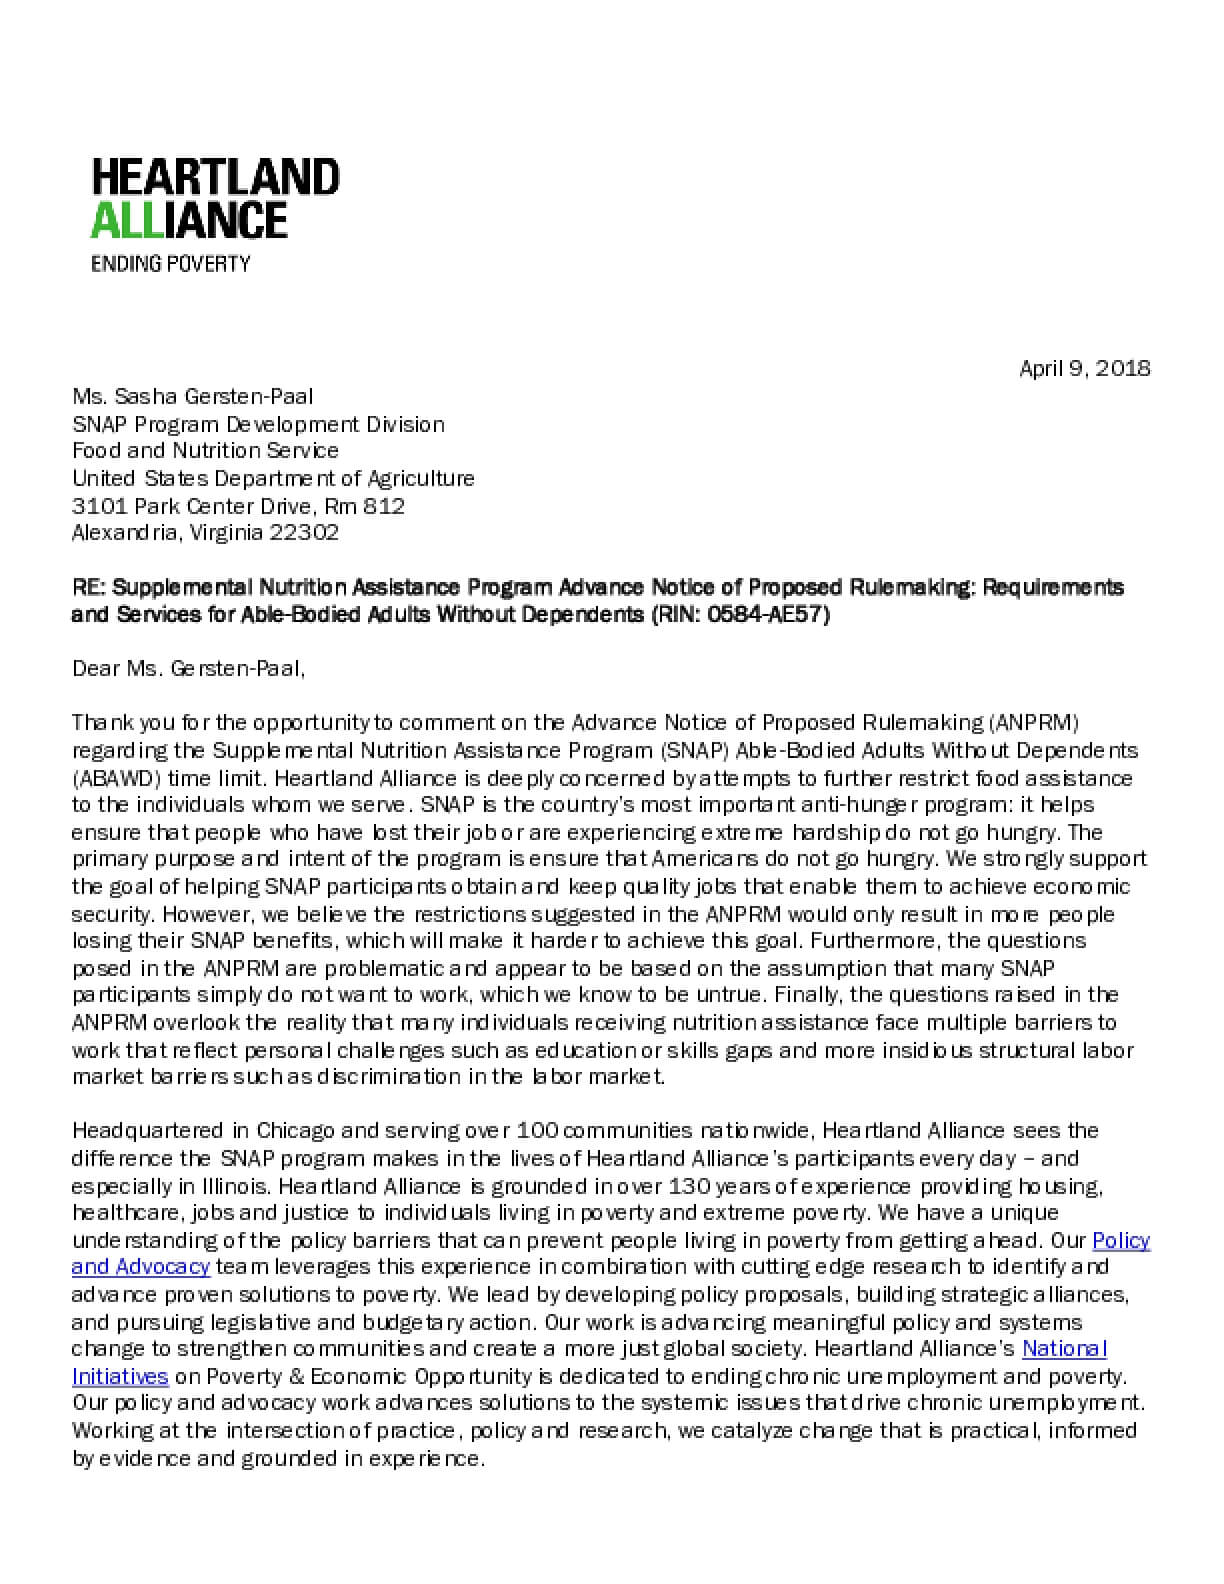 Requirements & Services for SNAP ABAWDs: Heartland Alliance Comments on USDA Advance Notice of Proposed Rulemaking